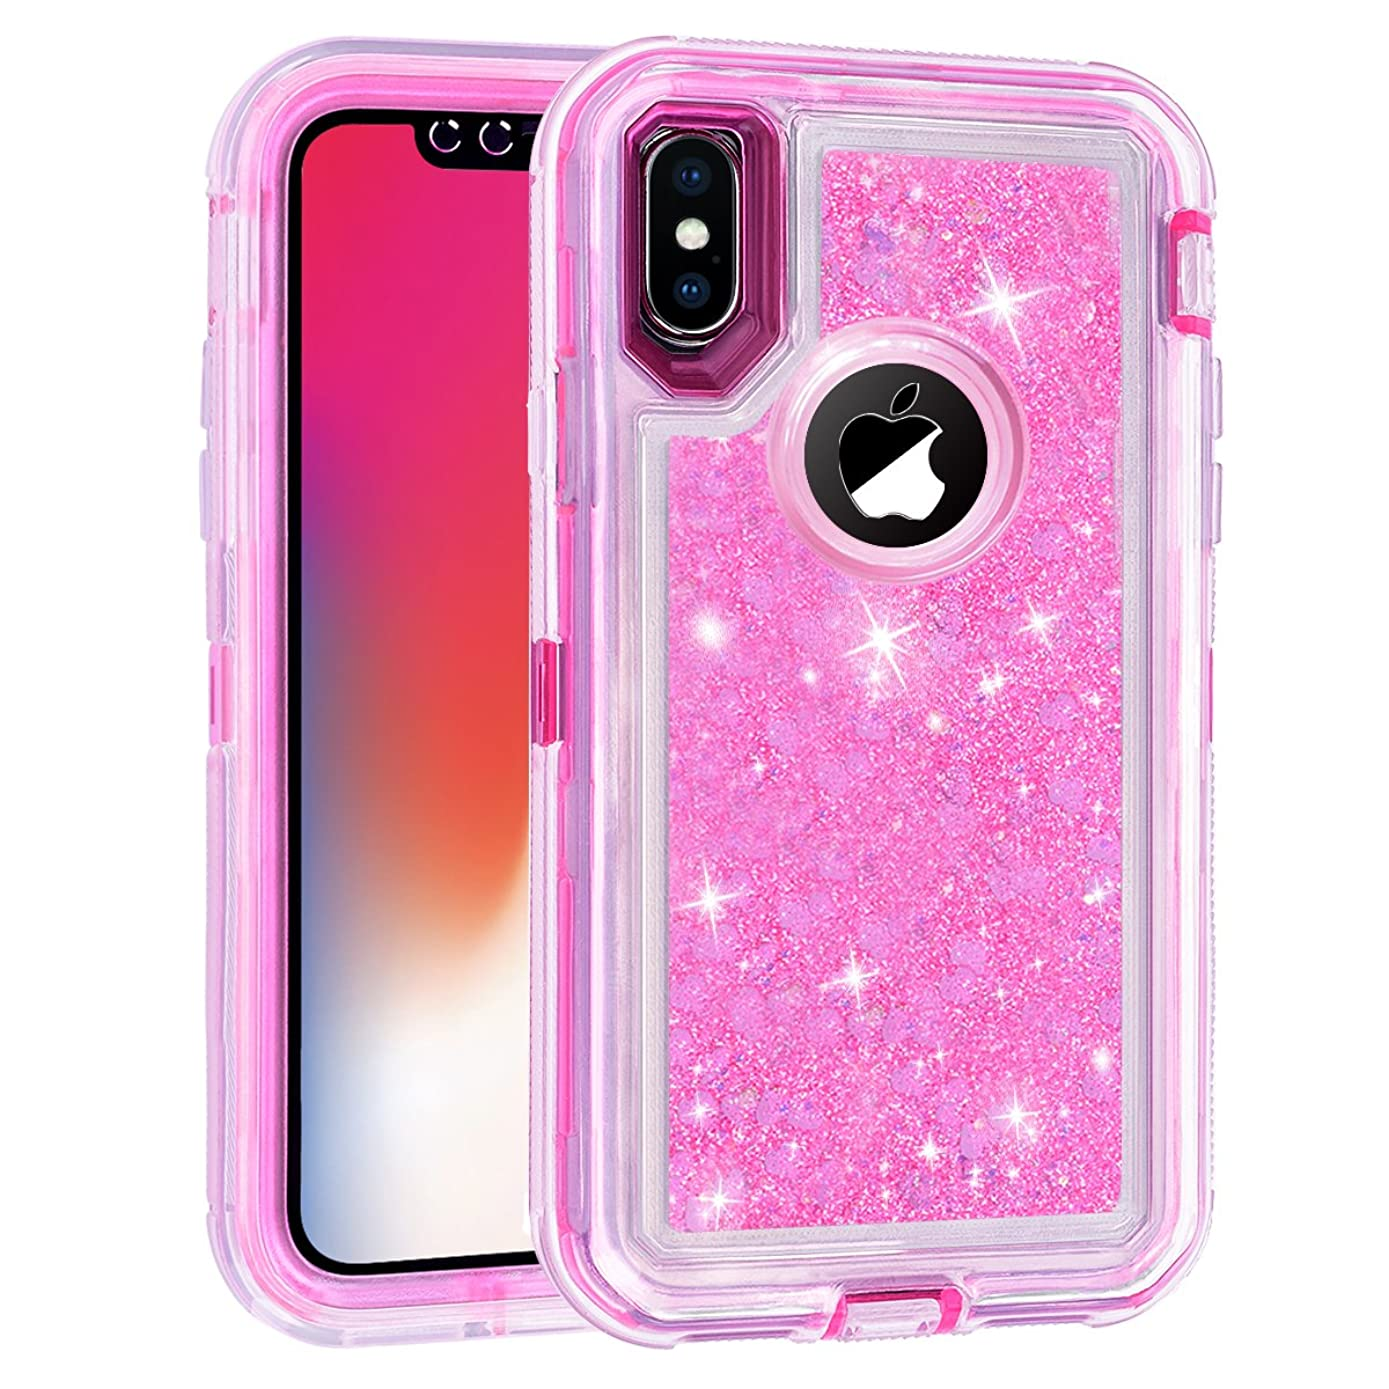 iPhone 8 Plus,7 Plus,6/6S Plus Universal Heavy Duty Protector Case,LLARIMIN Glitter 3D Bling Liquid Case for Girls,Luxury 3 in 1 Soft Core + Hard Frame Shockproof Case for iPhone 6/6s/7/8 Plus (Pink)